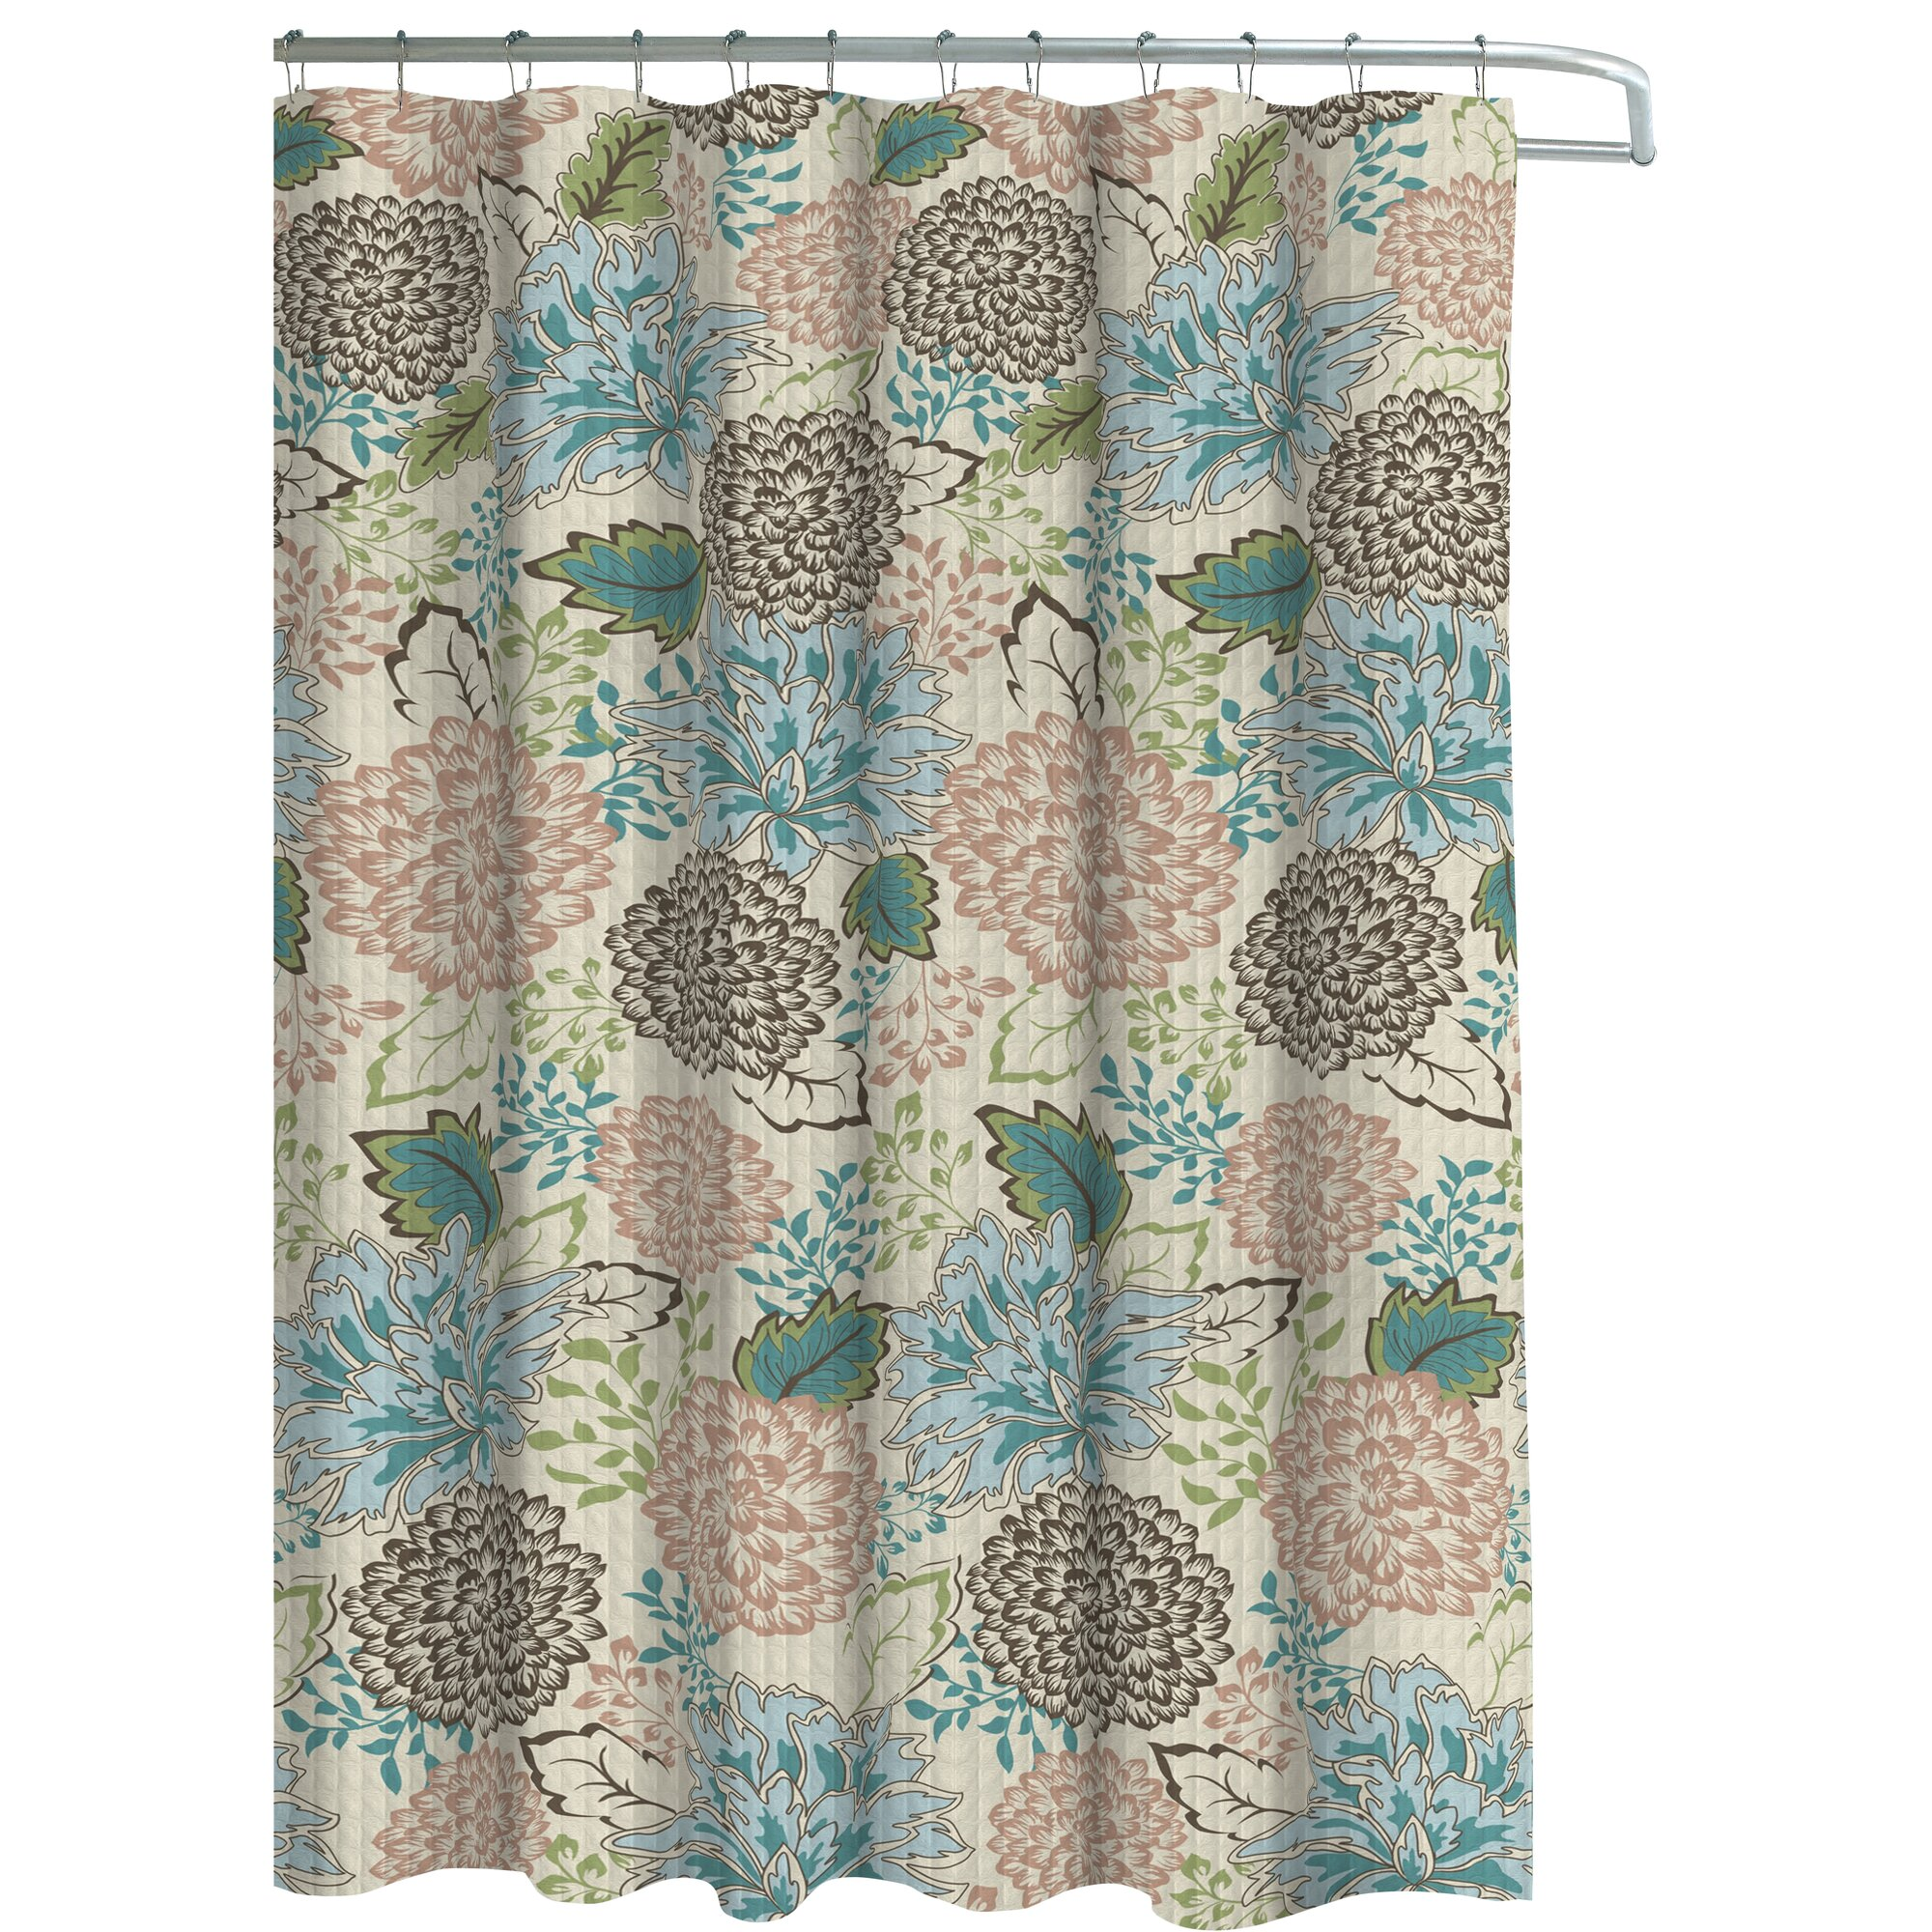 Bath Studio Oxford Fabric Weave Textured Floral Shower Curtain Set - Brown and turquoise shower curtain